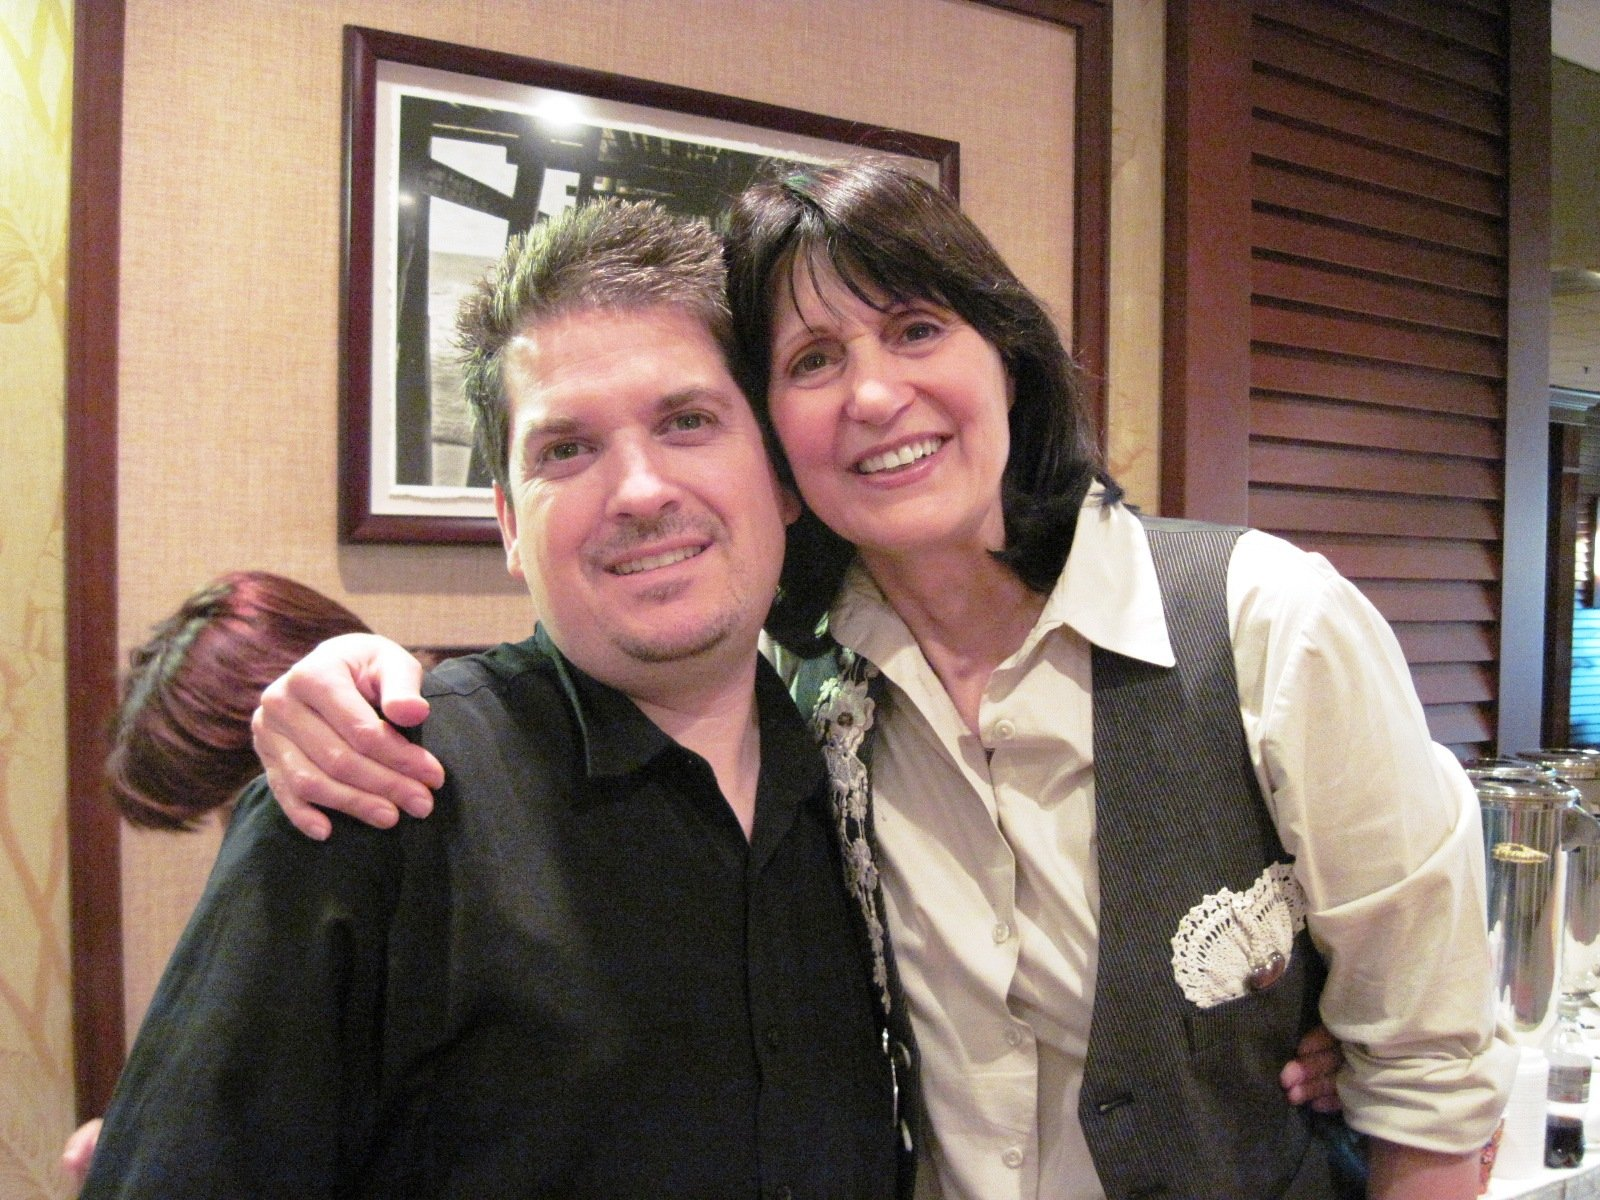 Wayne and Kathy Buckley